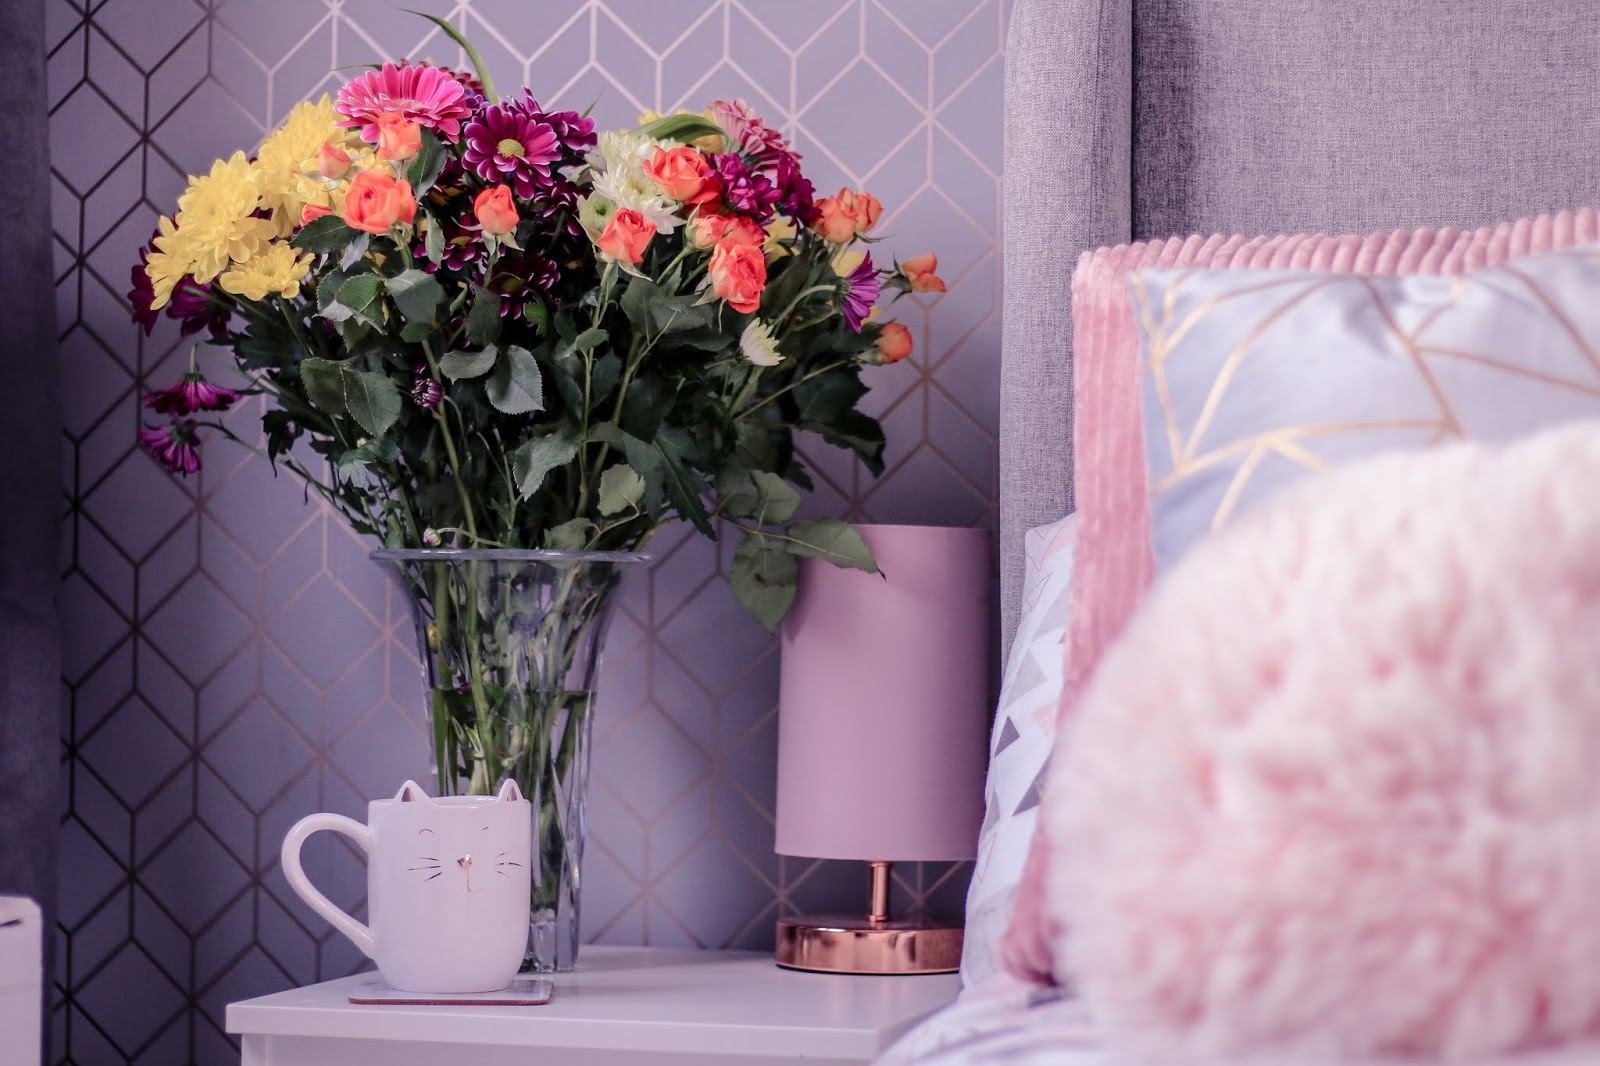 Landscape photo of a cat mug on a white bedside drawer with a bunch of pink and yellow flowers in a vase